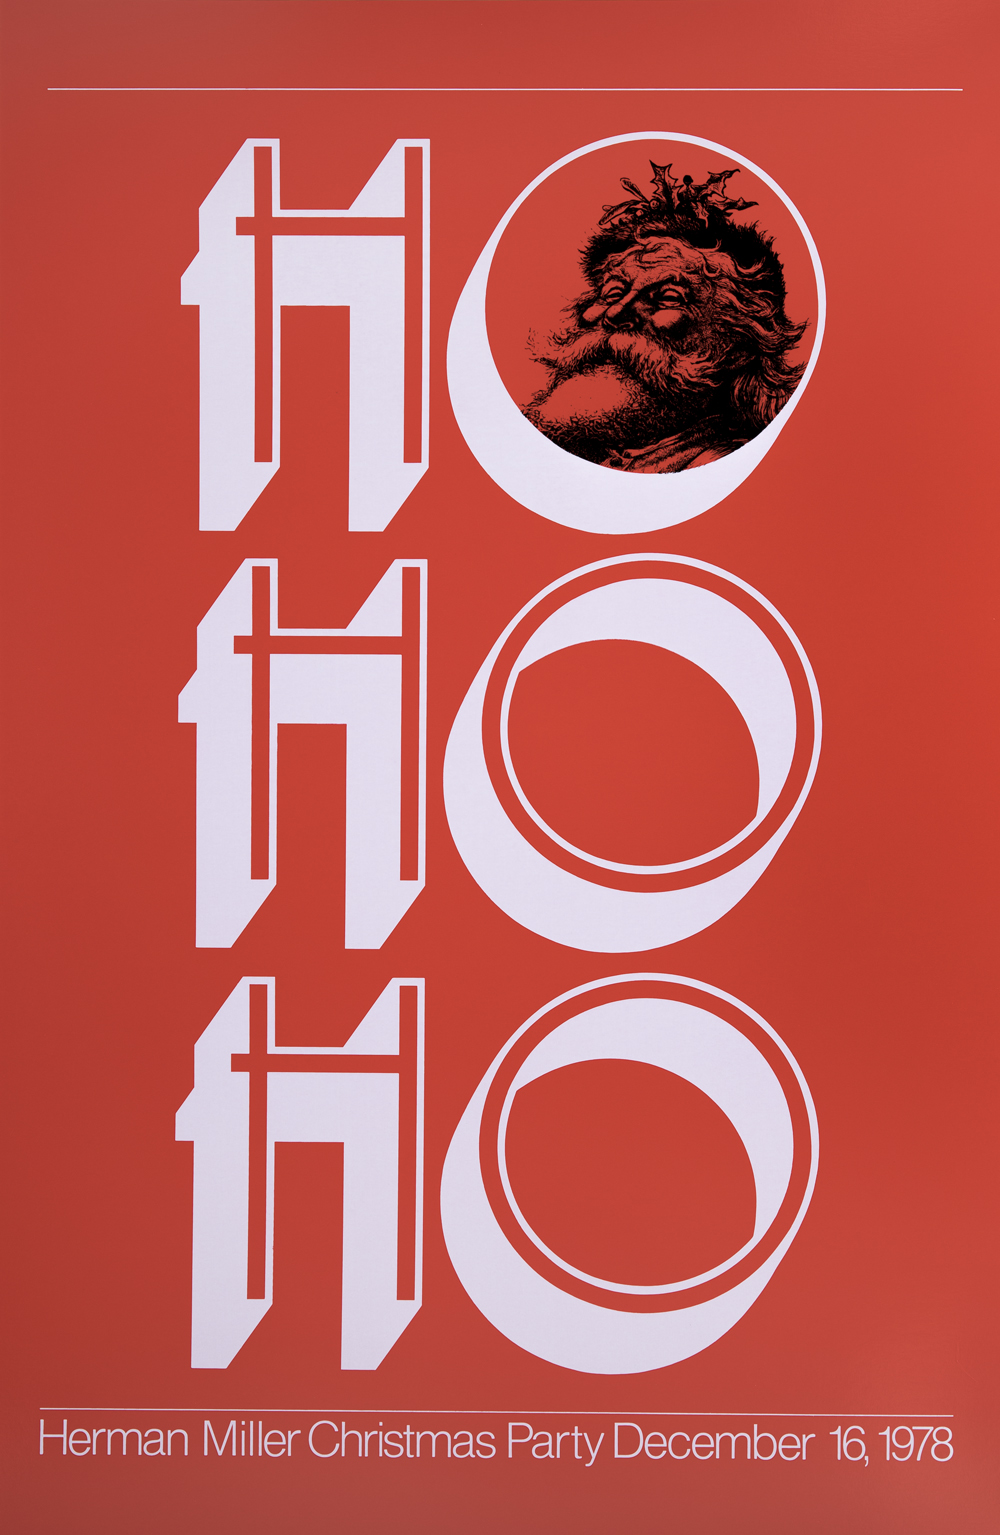 ho ho ho christmas party poster west michigan graphic design